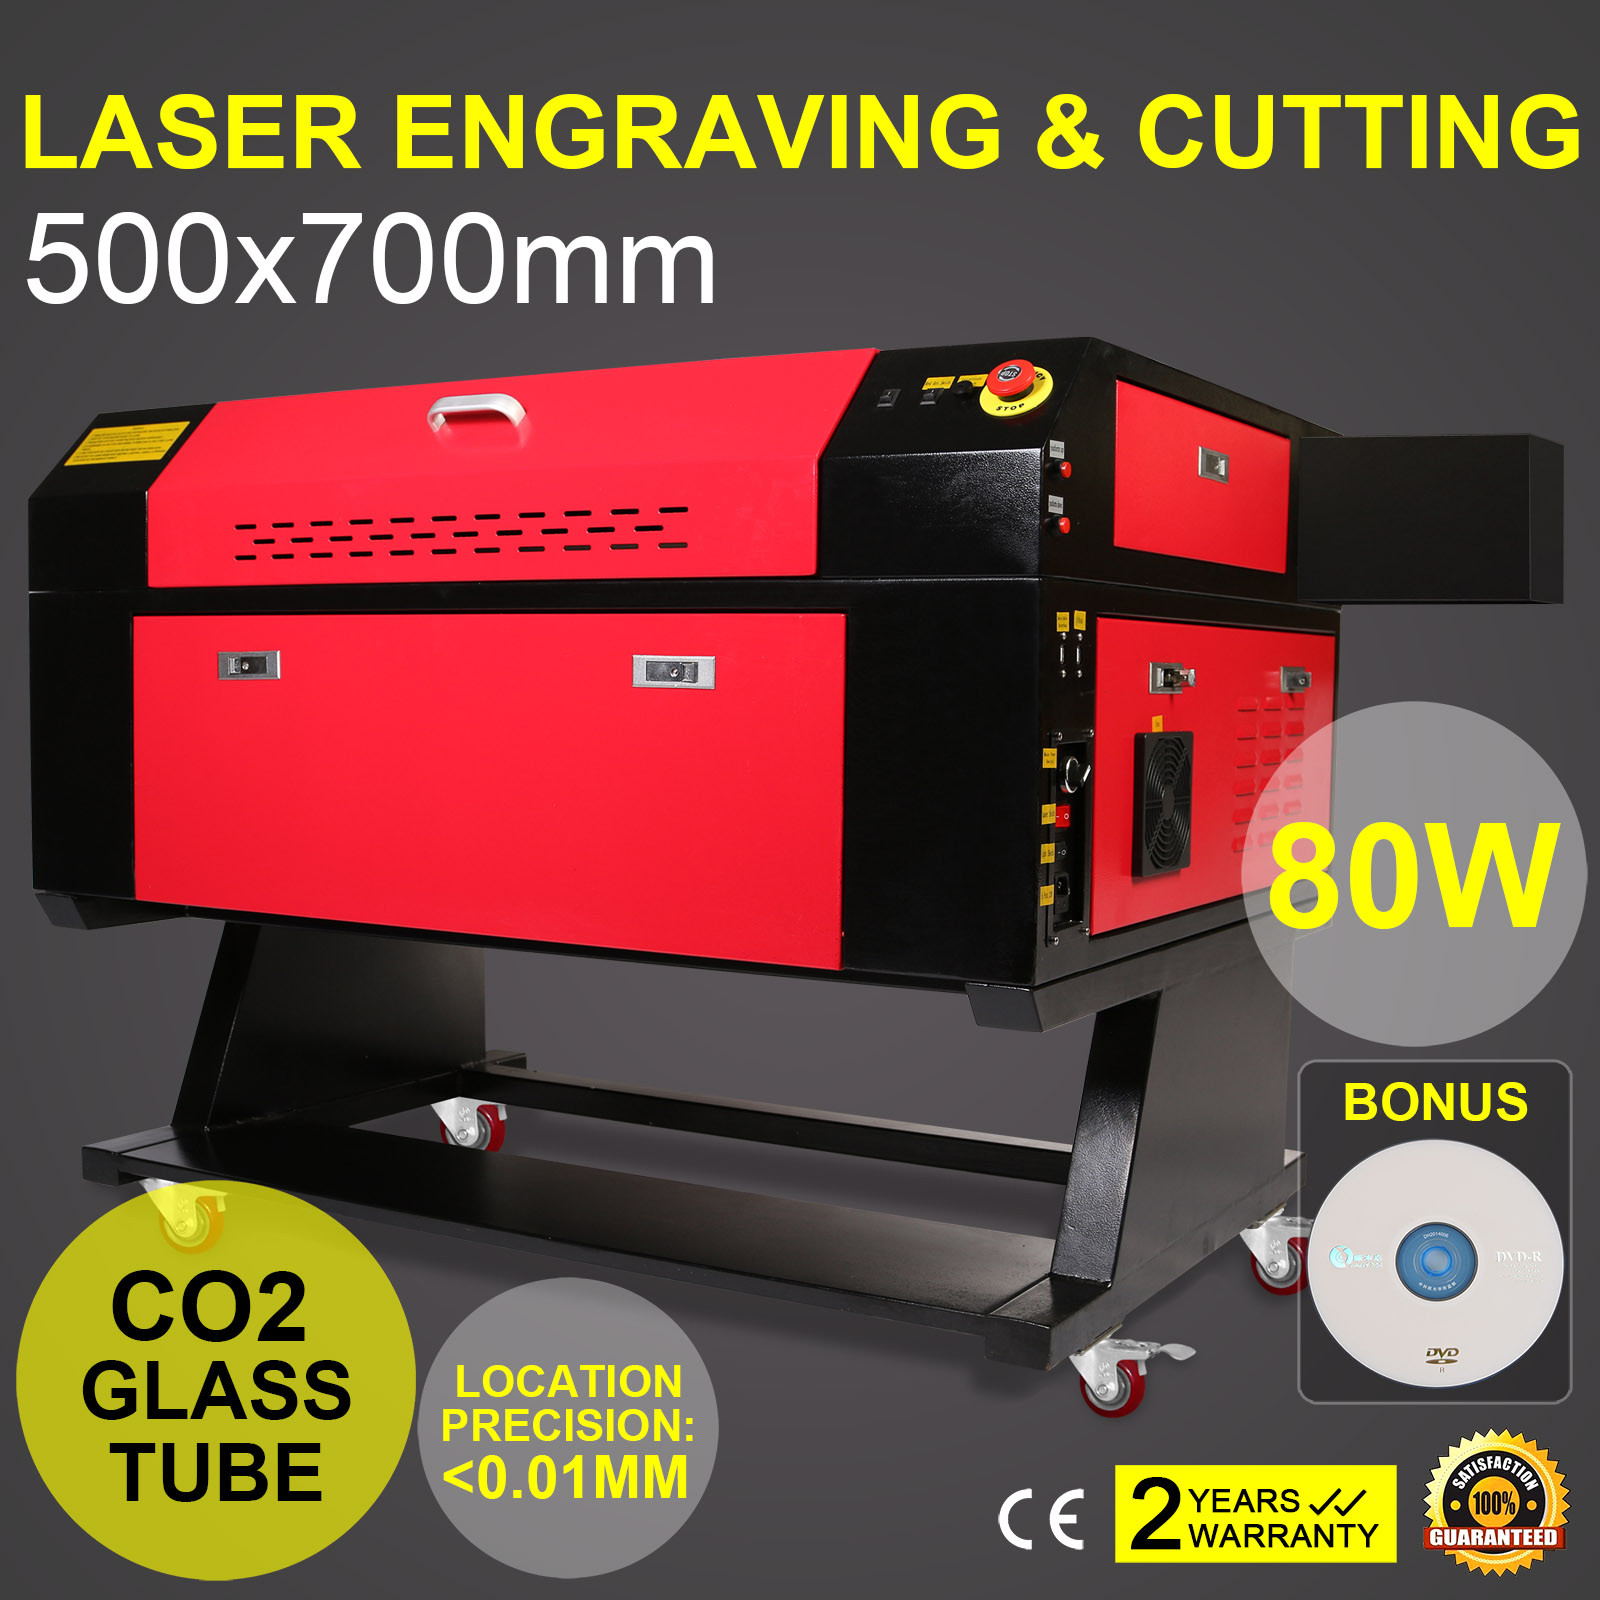 EU Free Shipping Mini Co2 Laser Engraving Machine Multiple Usage Removable 7050 Engraver Machine DSP Control System